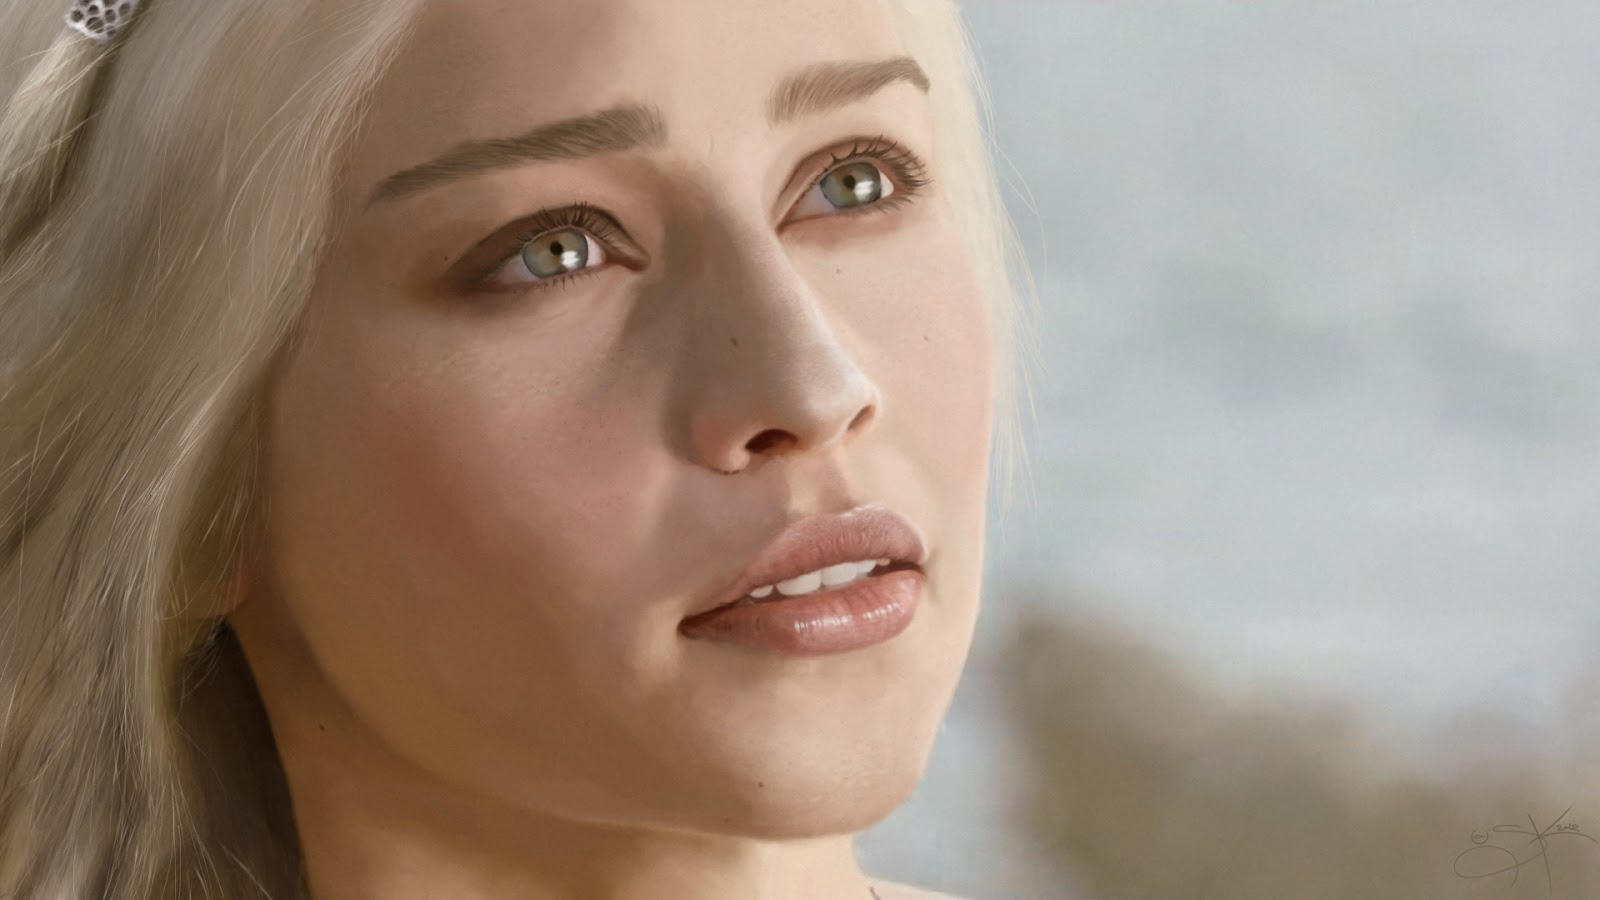 Cool Reviews Rule: ASOIAF - Why I Hate Daenerys Targaryen